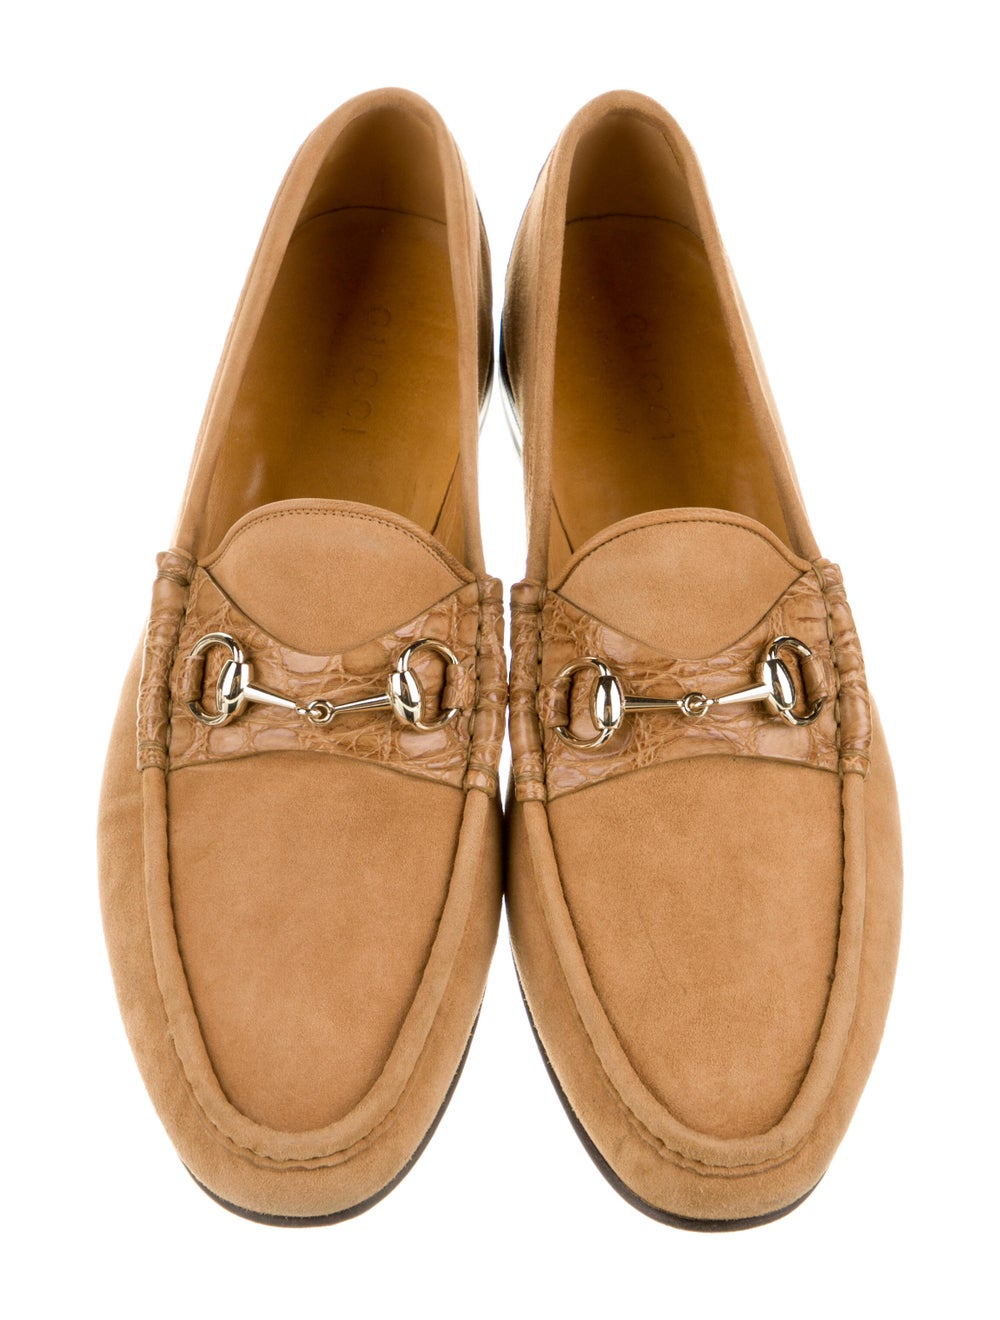 Gucci Horsebit Accent Suede Dress Loafers Brown - image 3